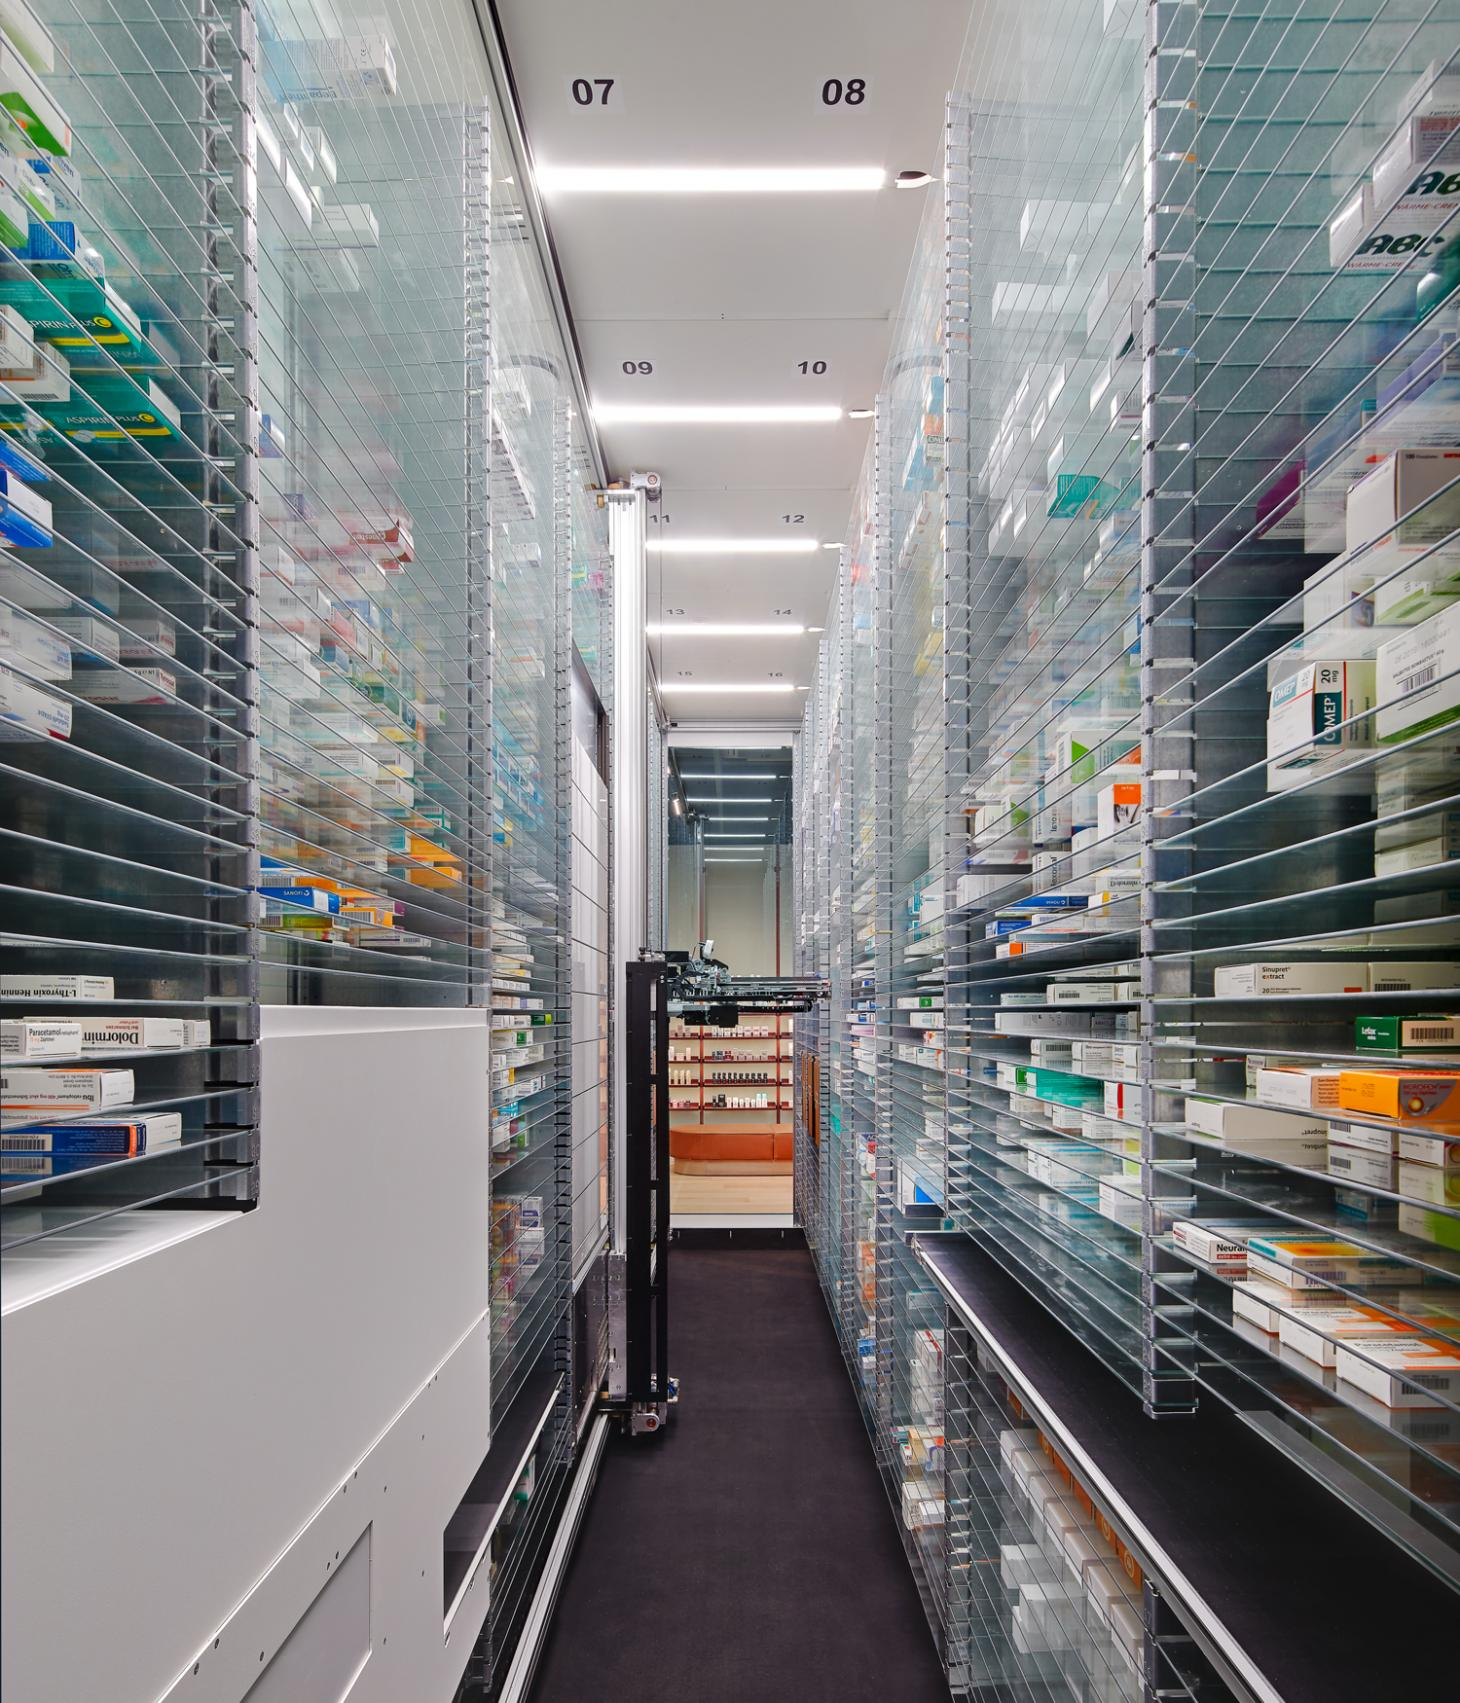 Studio Aisslinger pharmacy, automated delivery service